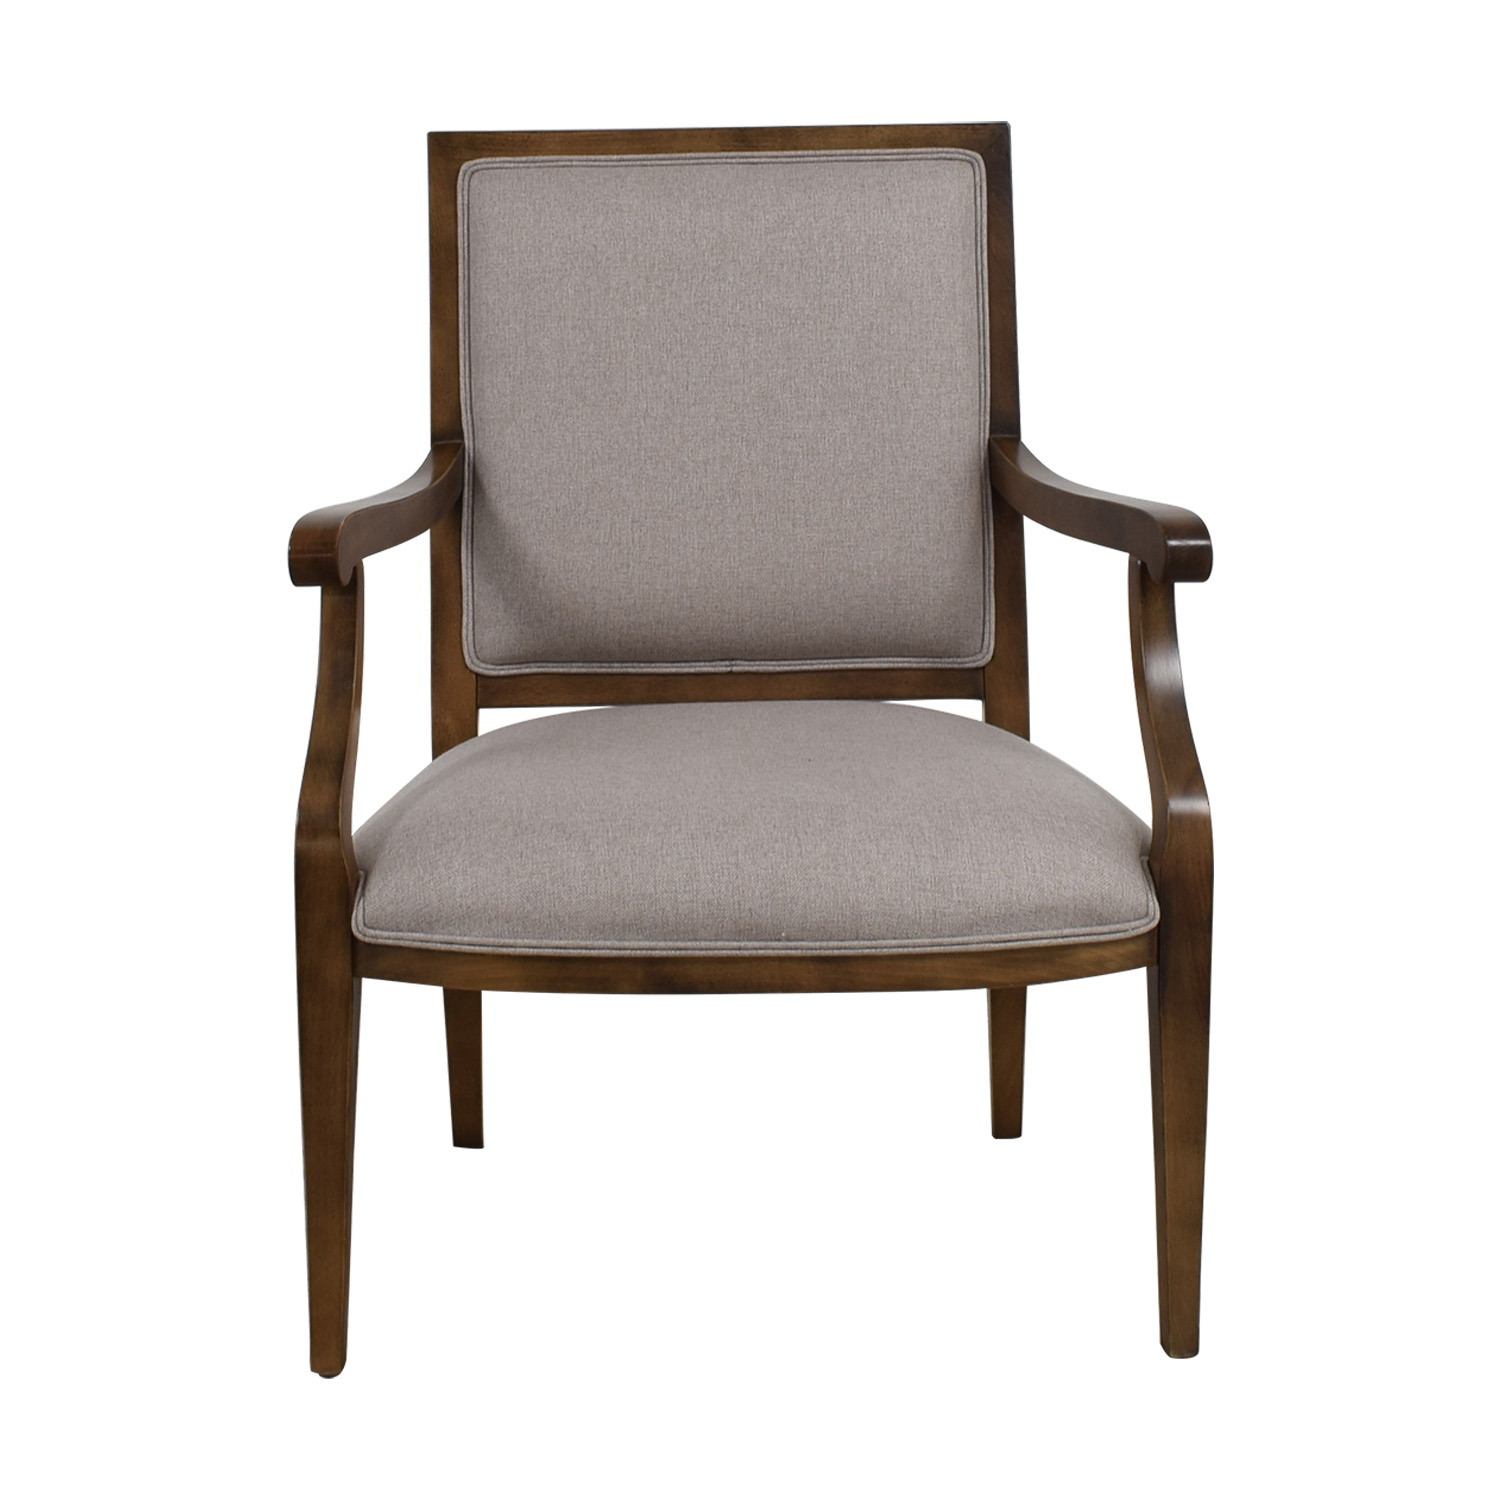 Restoration Hardware Grey Accent Chair / Chairs